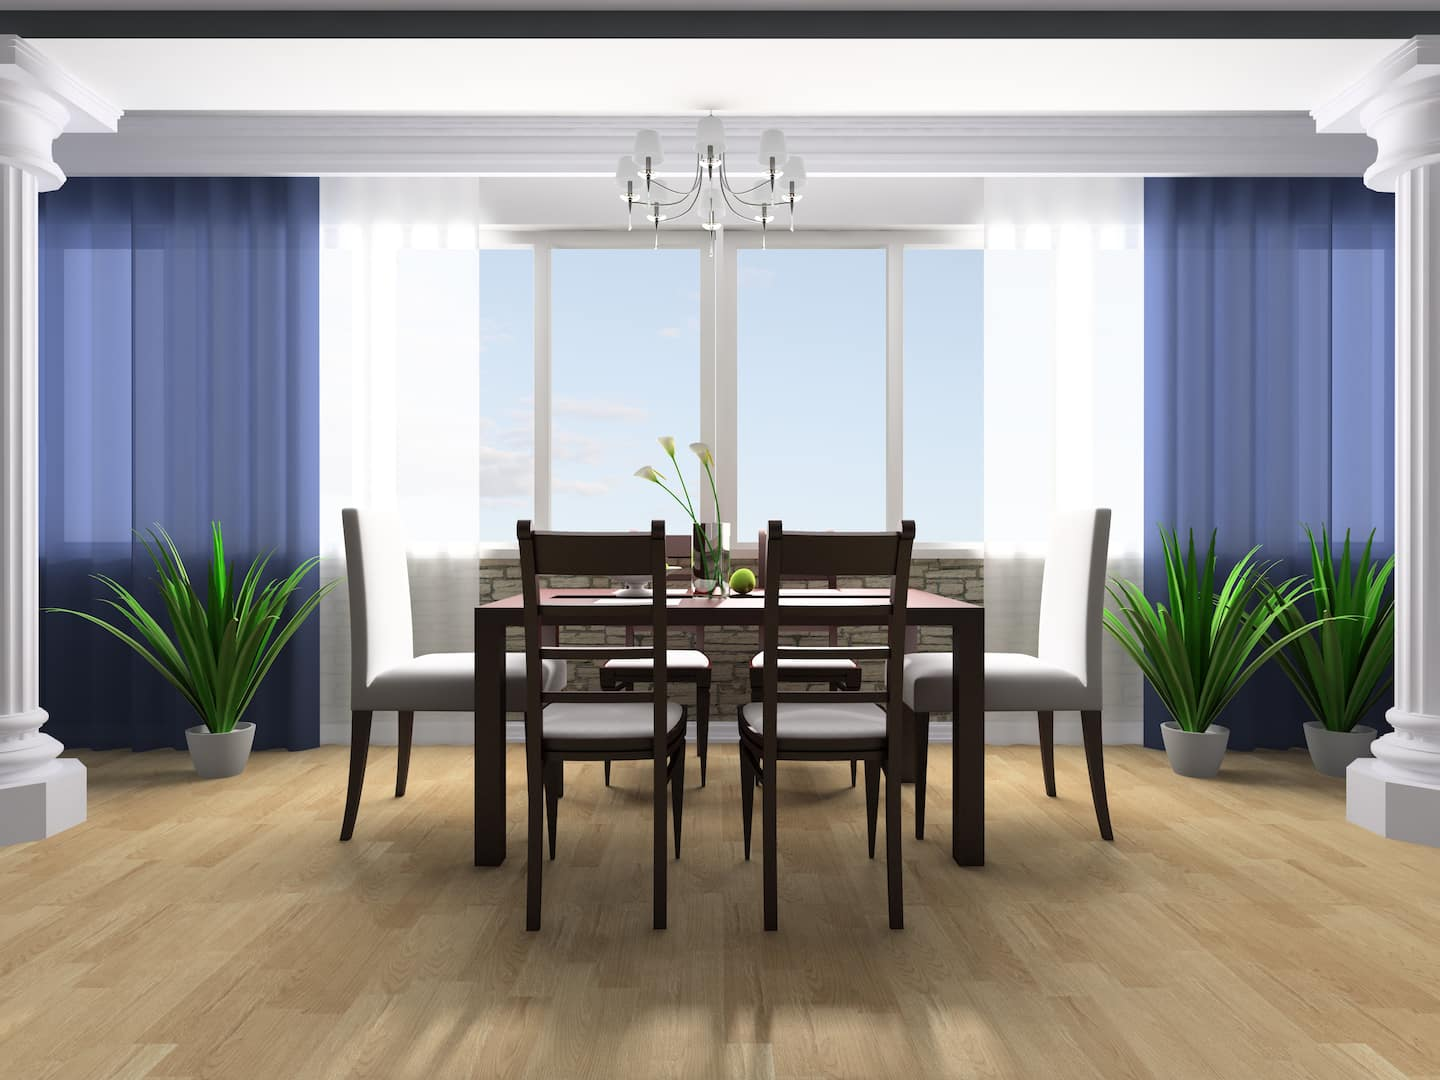 3D Rendering Of A Contemporary Dining Room With Sheer Blue Drapes Layered  Over Sheer White Drapes